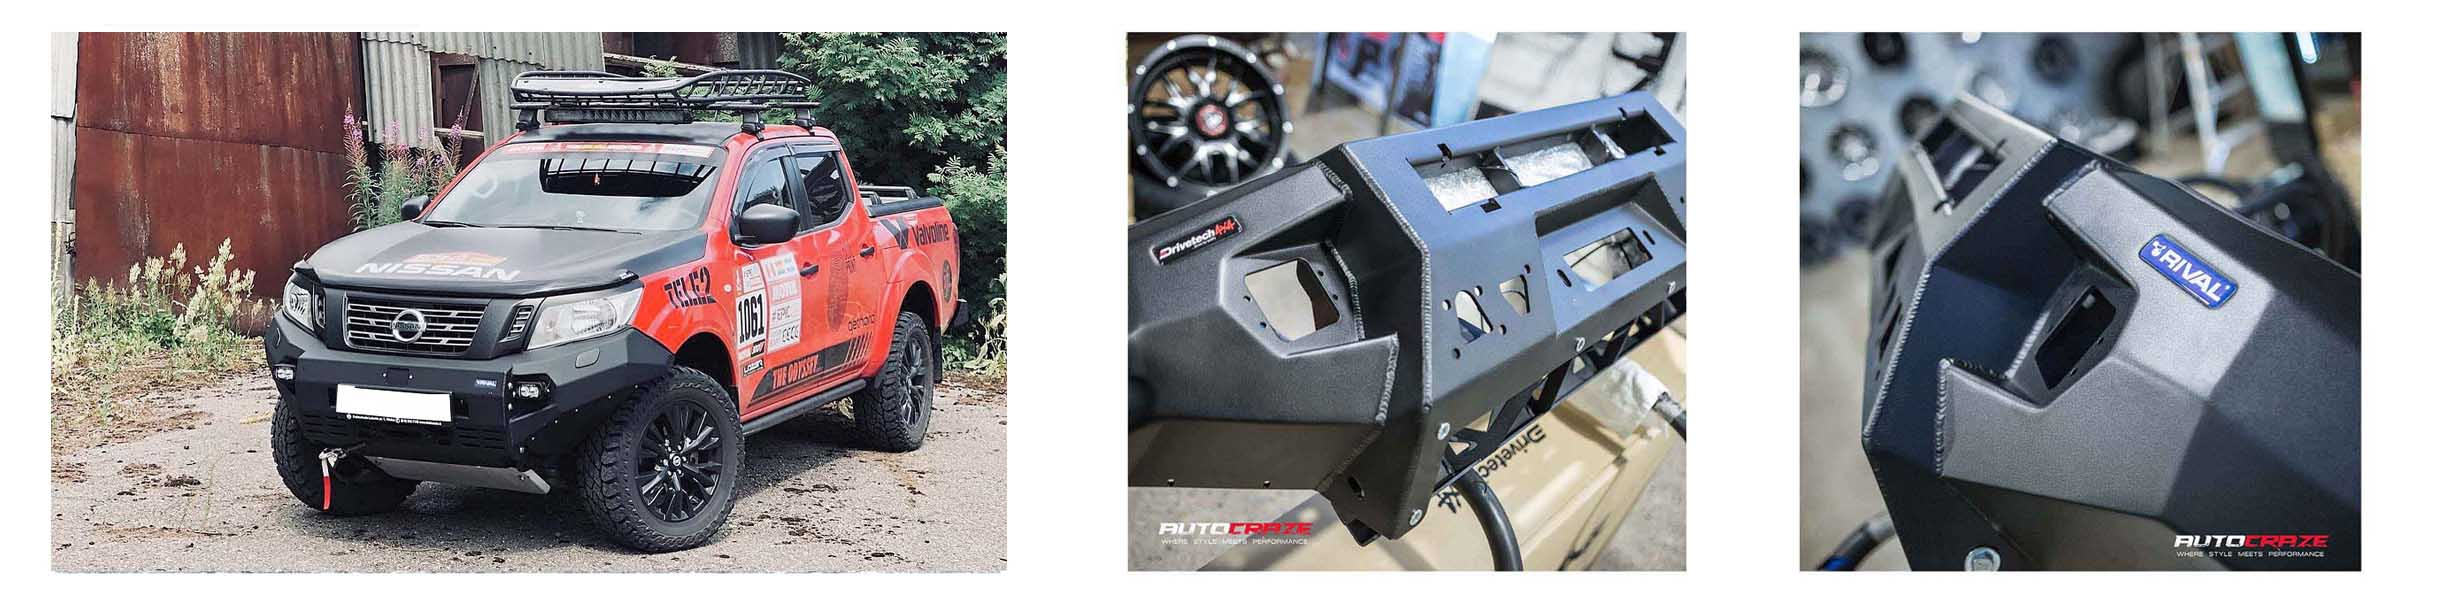 Images of the Rival Bumper Bar on a Nissan Navara.